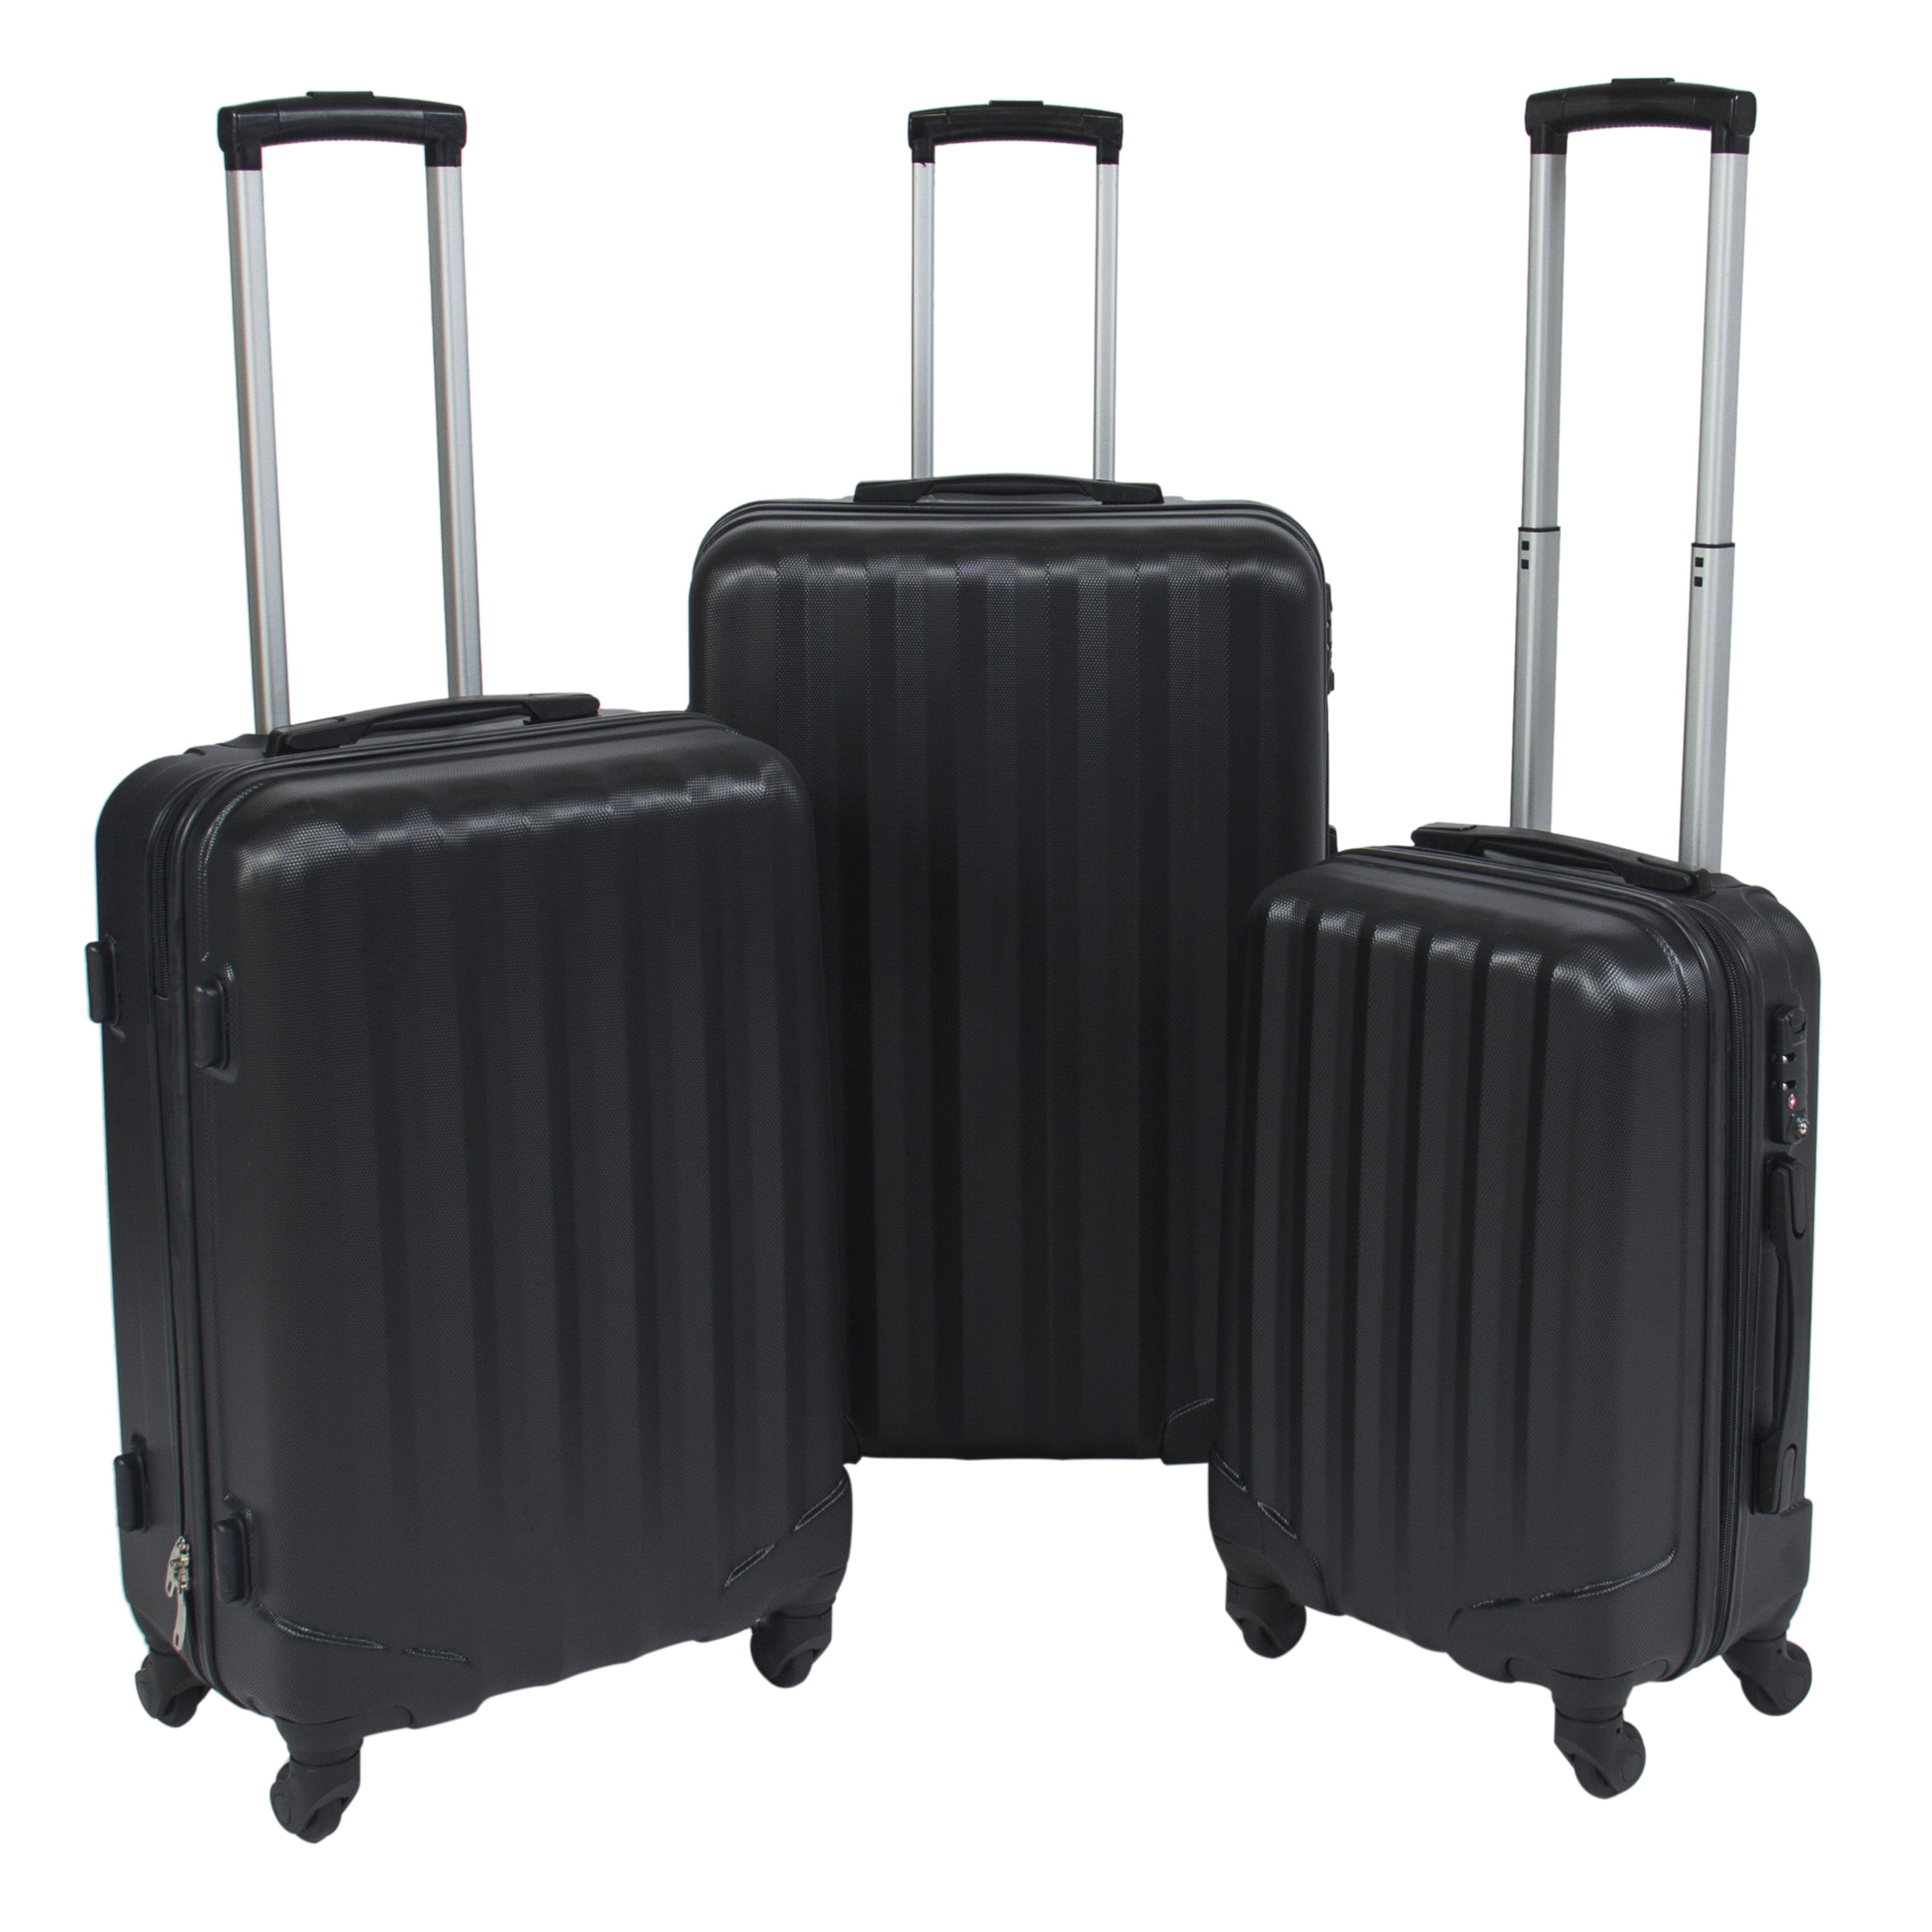 Best Choice Products 3 Piece Travel Luggage Set Bag ABS Hardshell ...